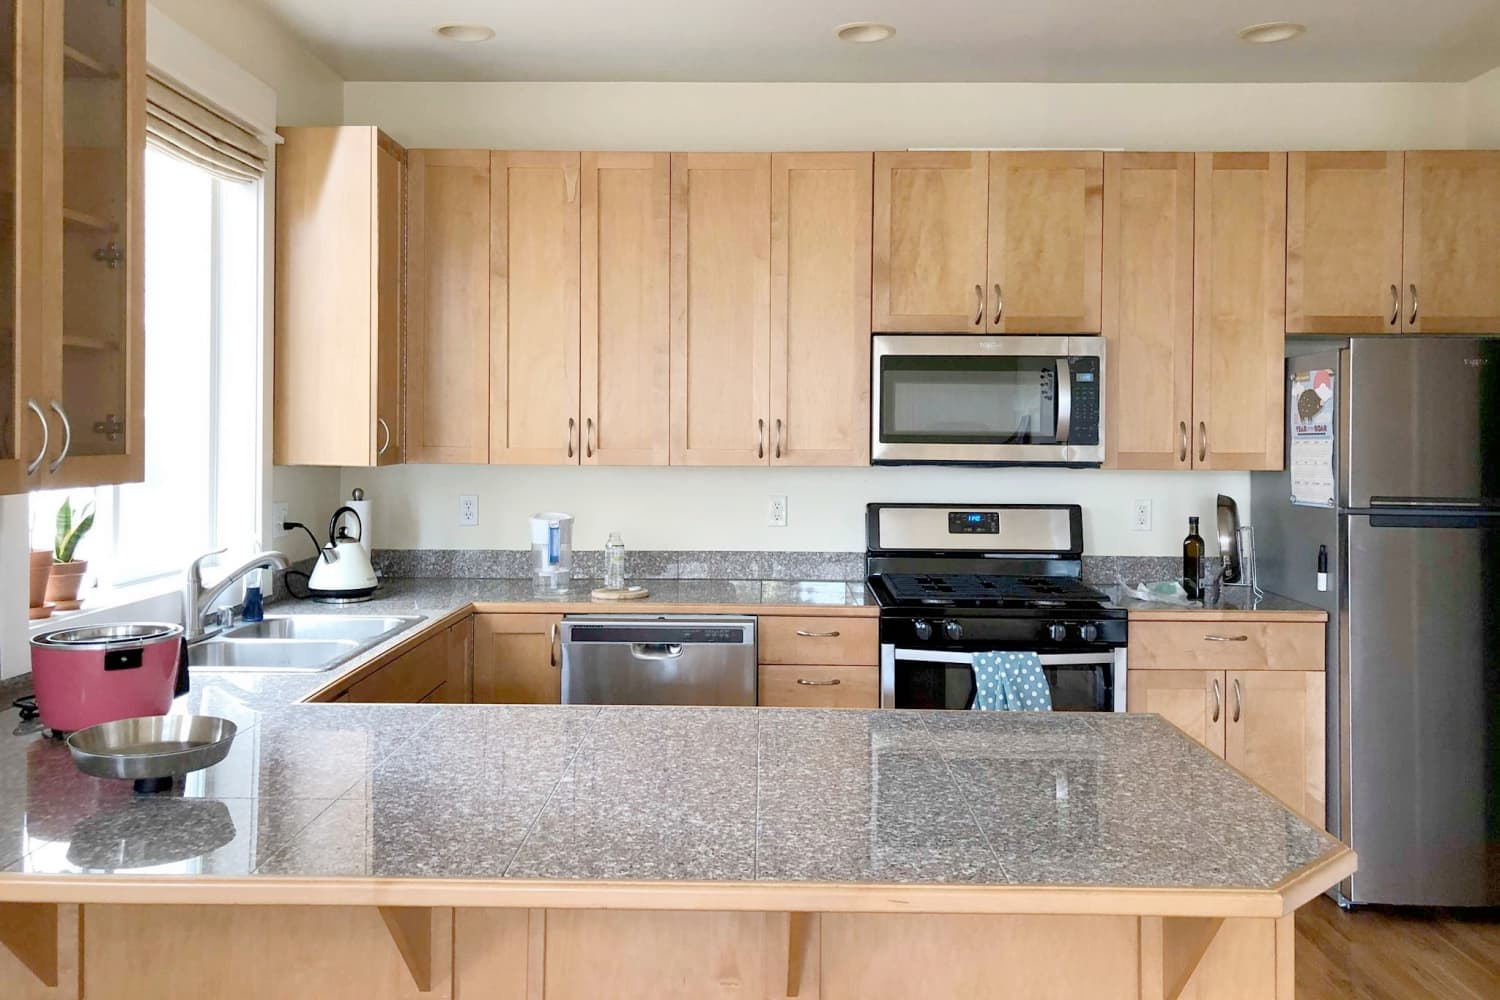 Before and After: Small Upgrades in a Kitchen with Wood ...